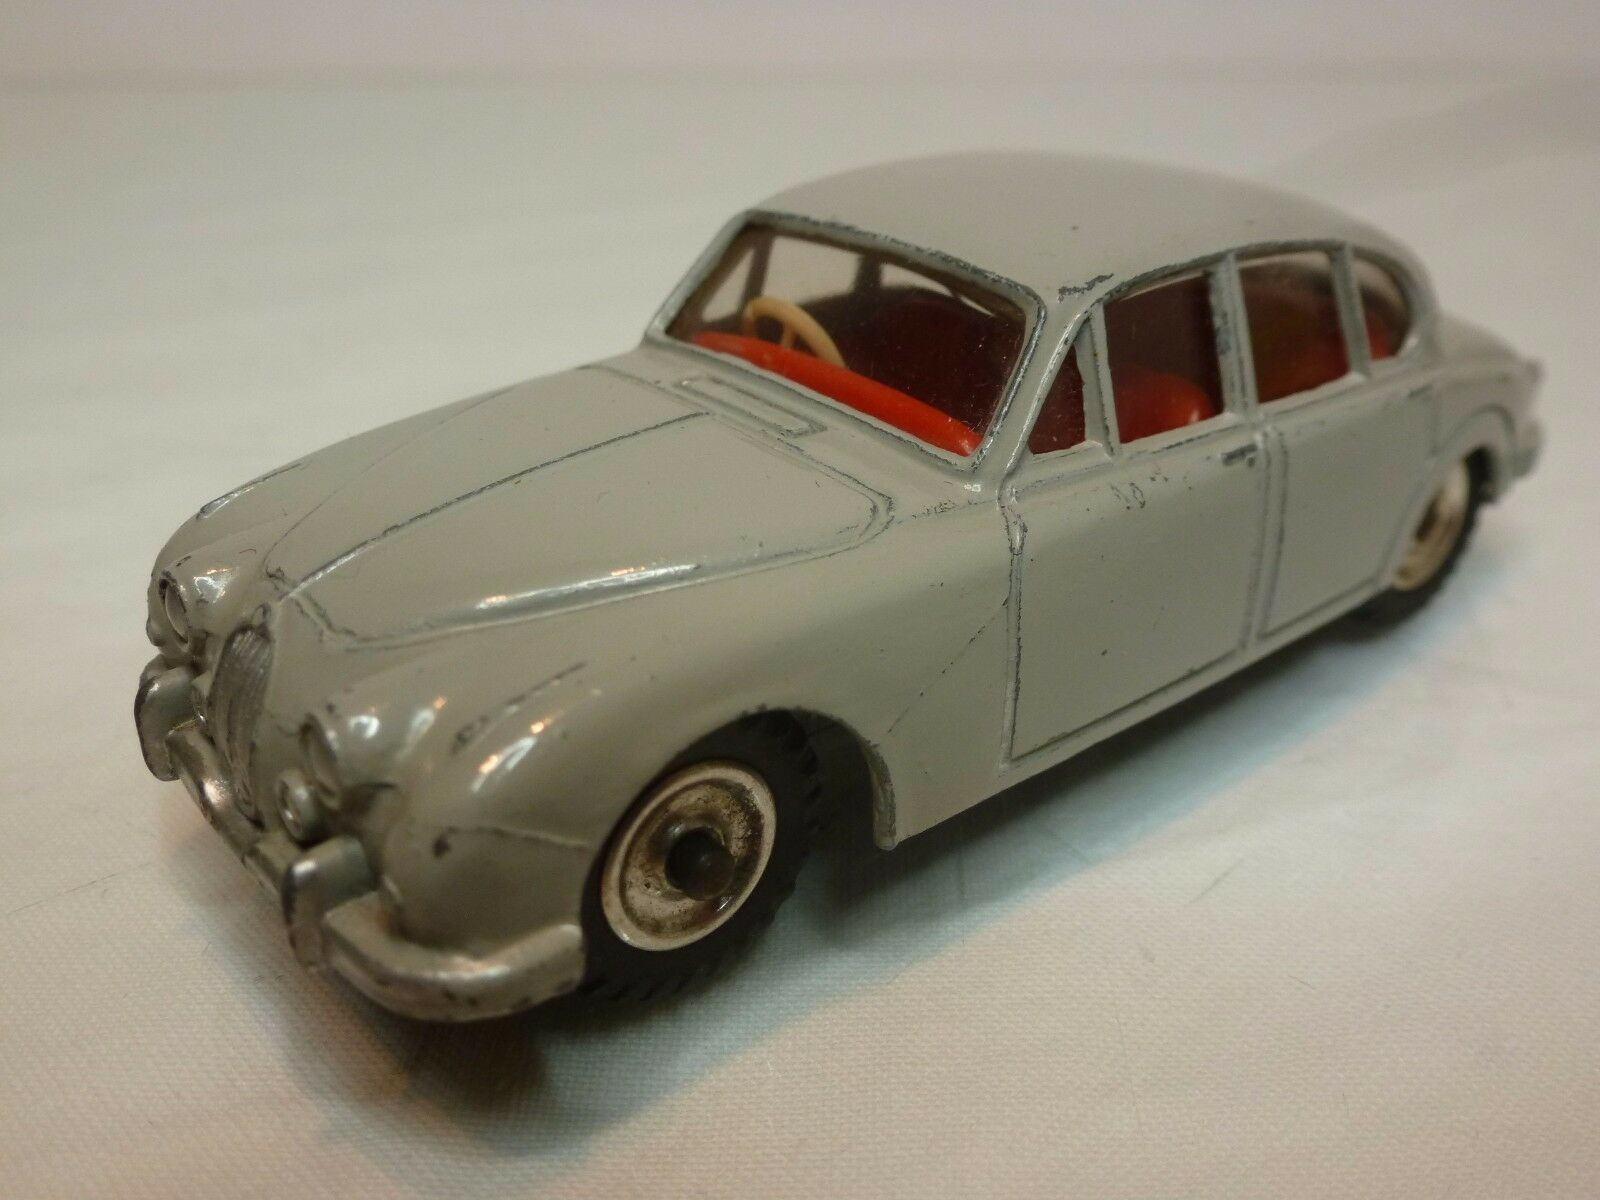 DINKY TOYS 195 JAGUAR 3.4 LITRE - grigio 1 43 - VERY GOOD CONDITION